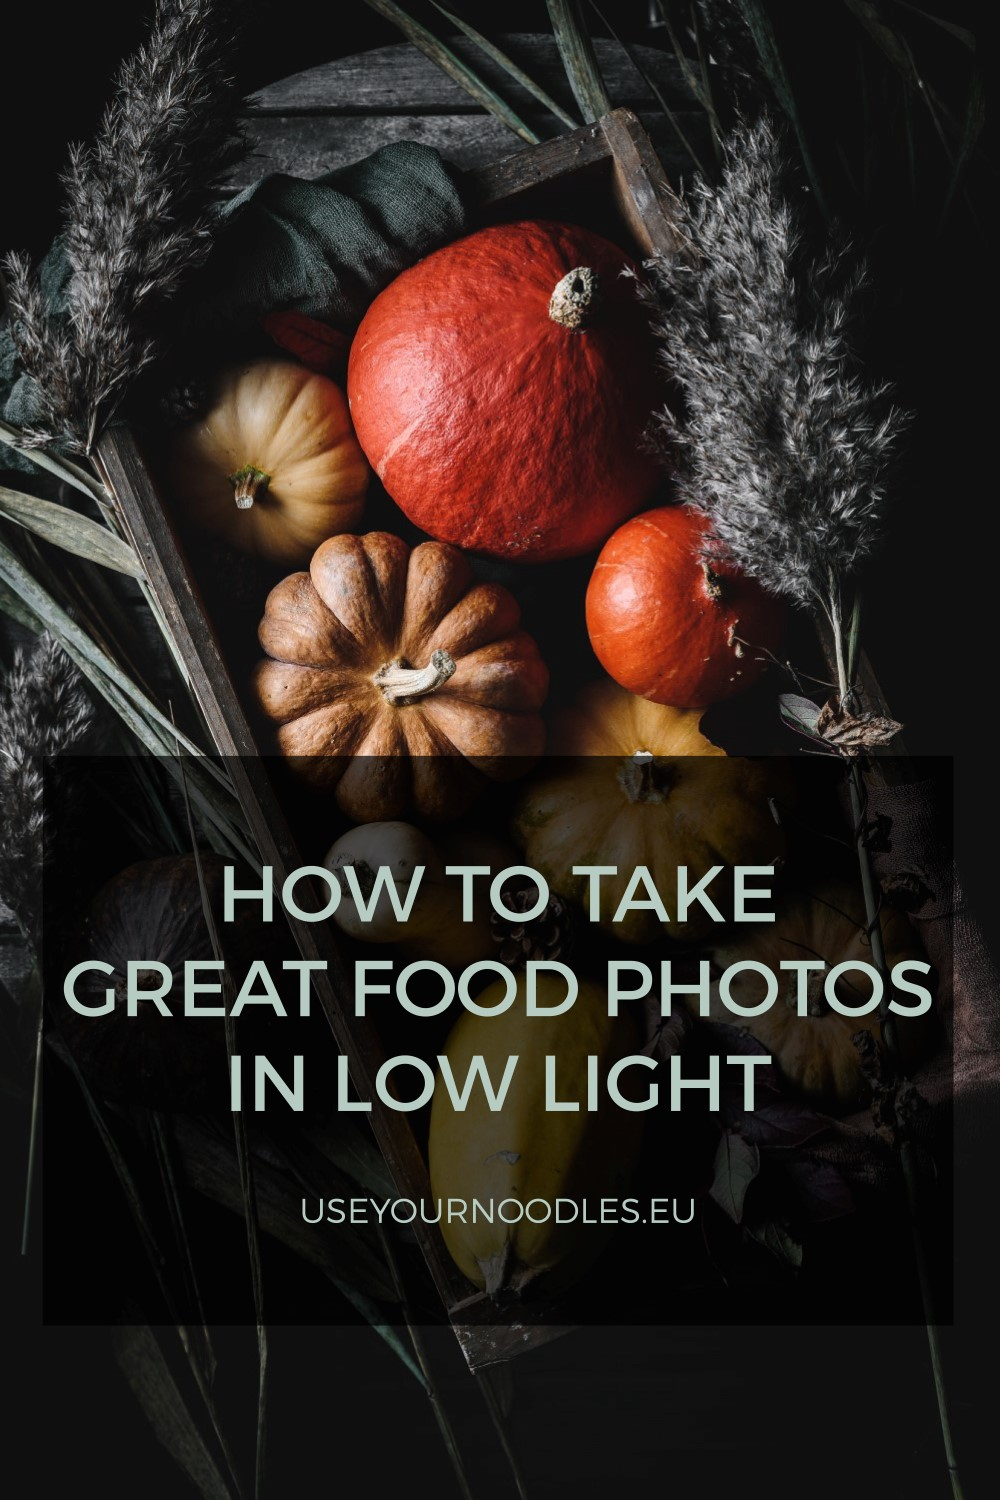 Taking great food photos in low light can be really frustrating, but it doesn't need to be. With these five tips, you'll be able to shoot in a very dark room and still create beautiful images.